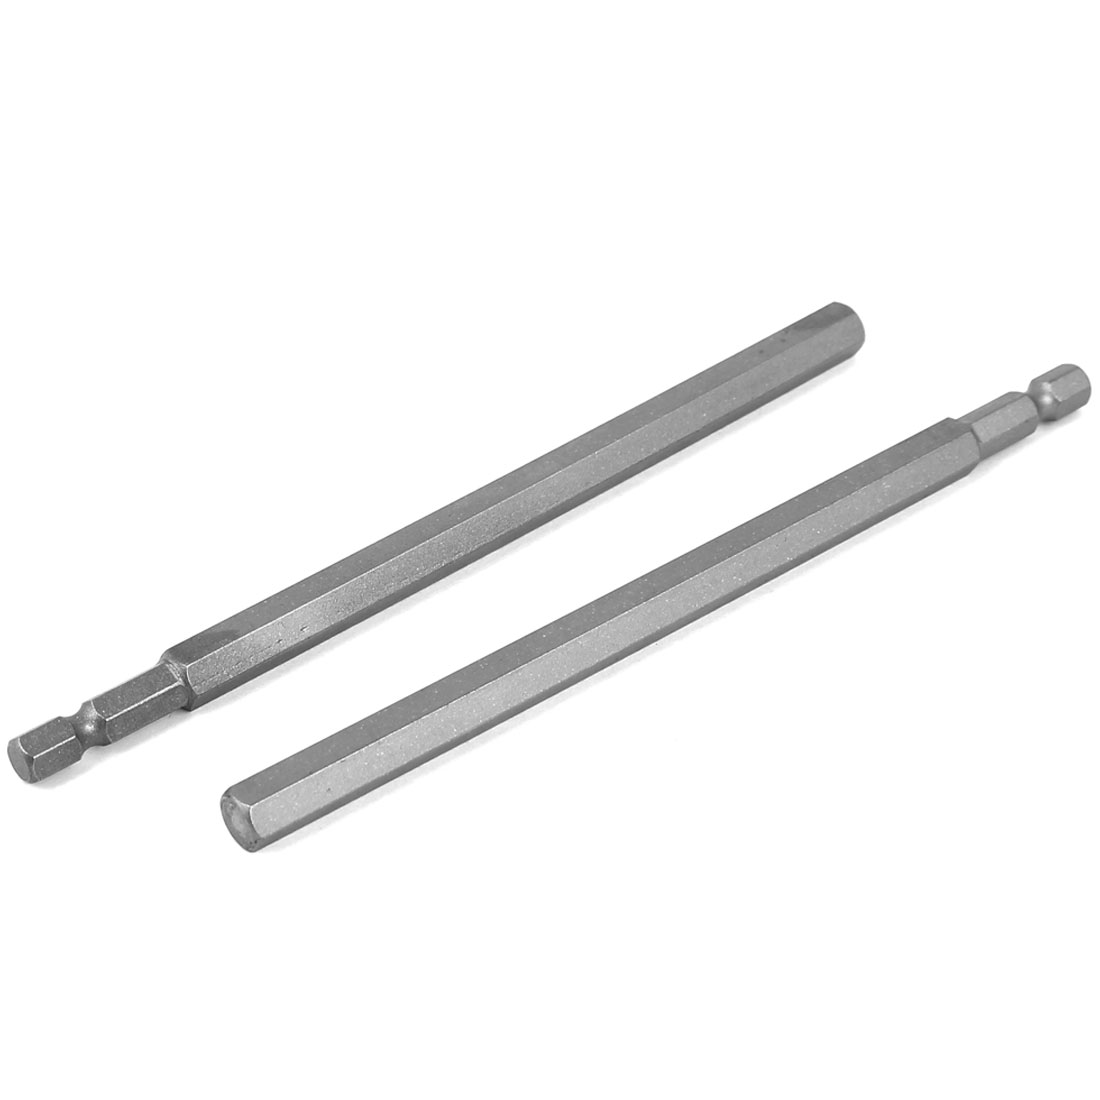 150mm Length 8mm Tip Hexagon Magnetic Screwdriver Insert Bits Gray 2 Pcs